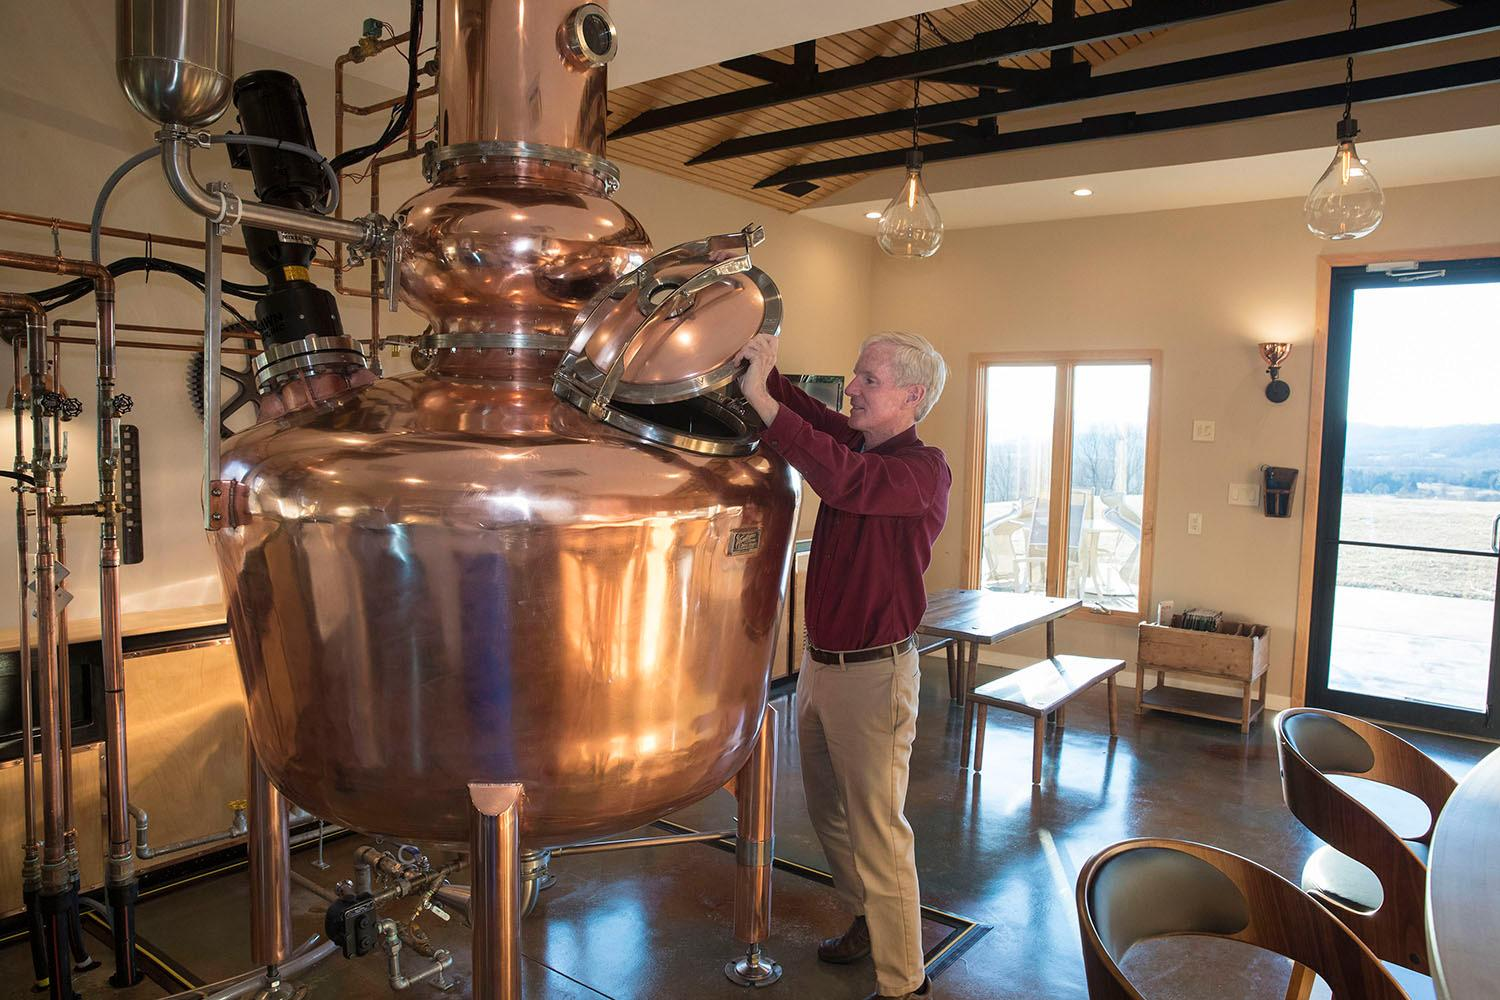 Robin Felder, a professor of pathology and associate director of laboratory medicine, is the owner of Monte Piccolo Distillery.